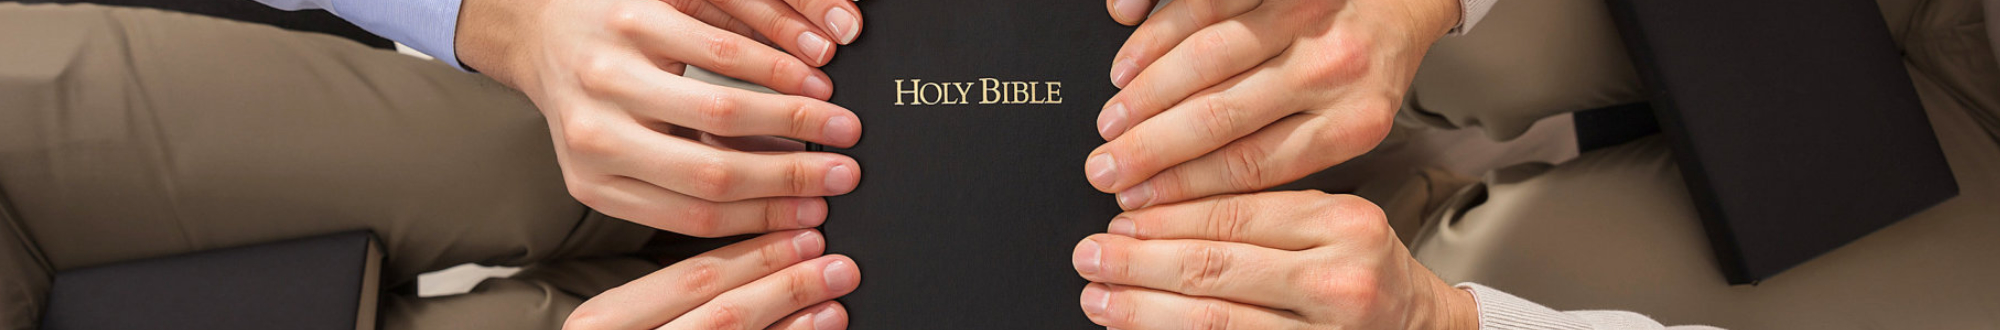 people holding the bible